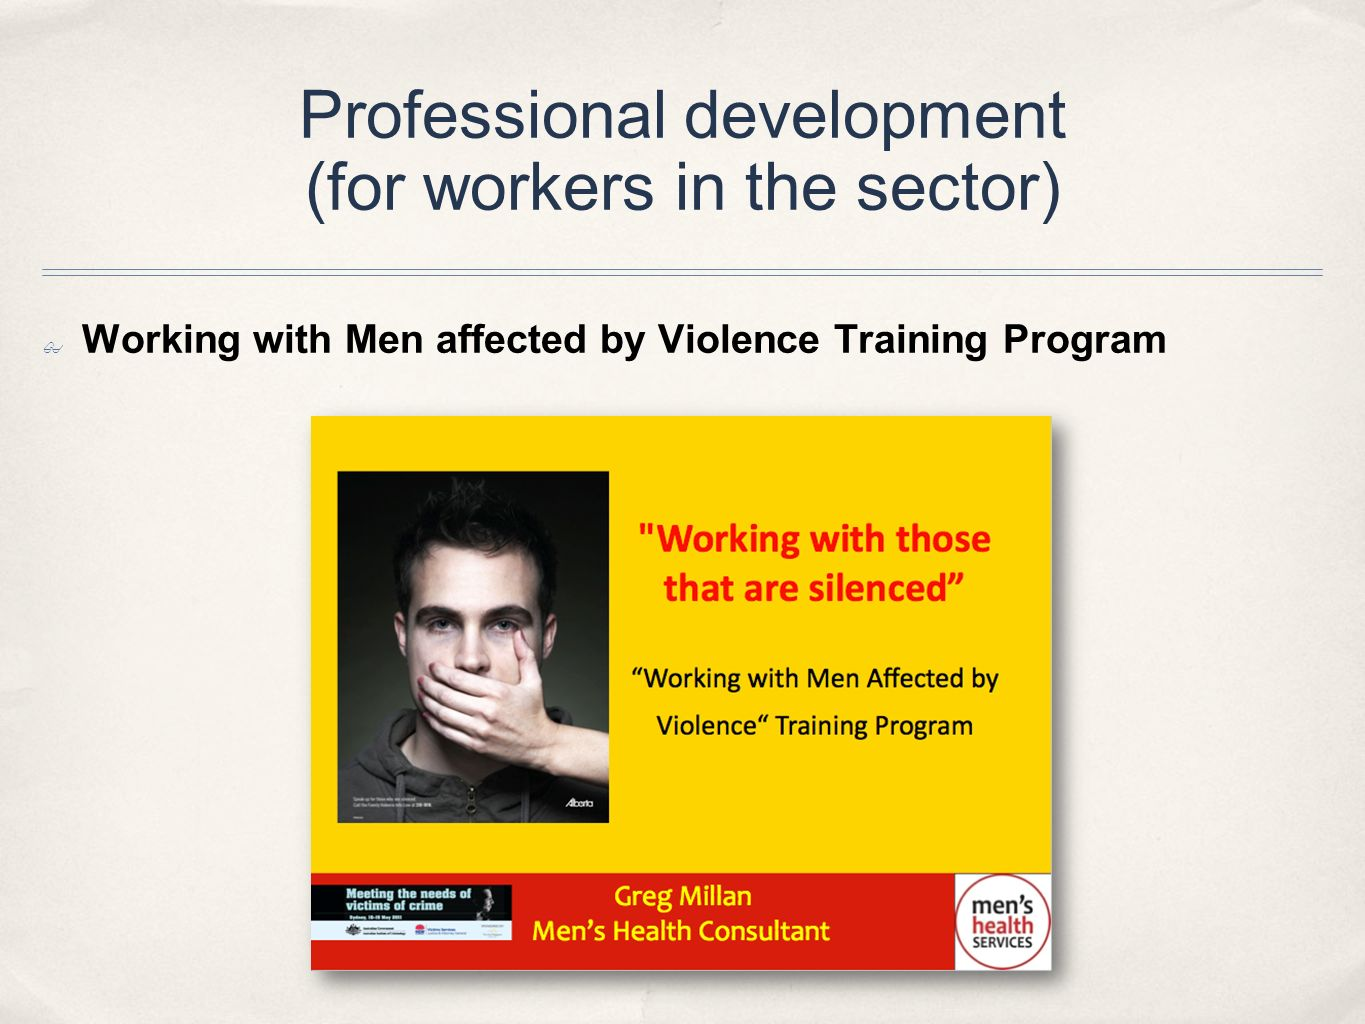 Professional development (for workers in the sector)